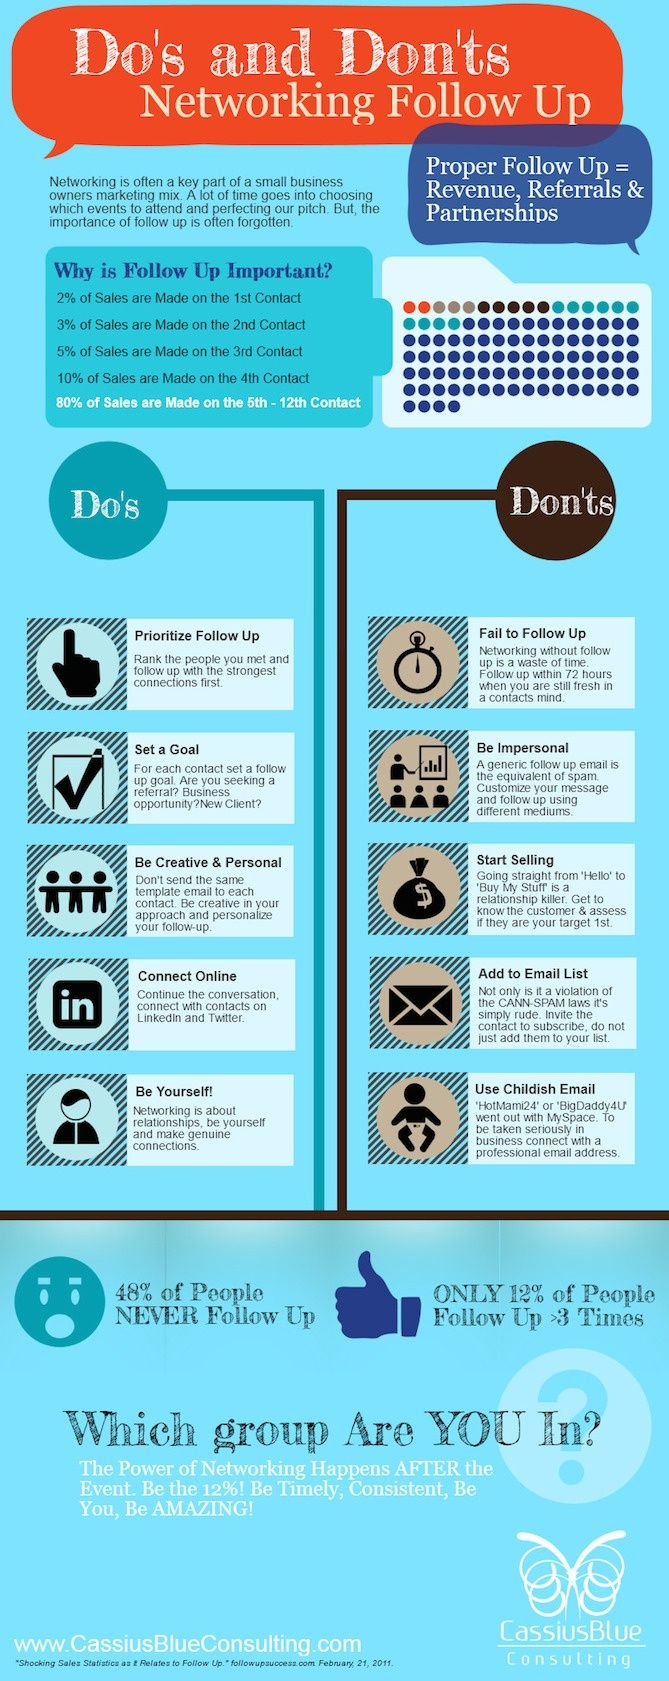 best ideas about s careers s motivation infographic dos don t of networking follow up cassius blue consulting brand strategy for start ups and small businesses